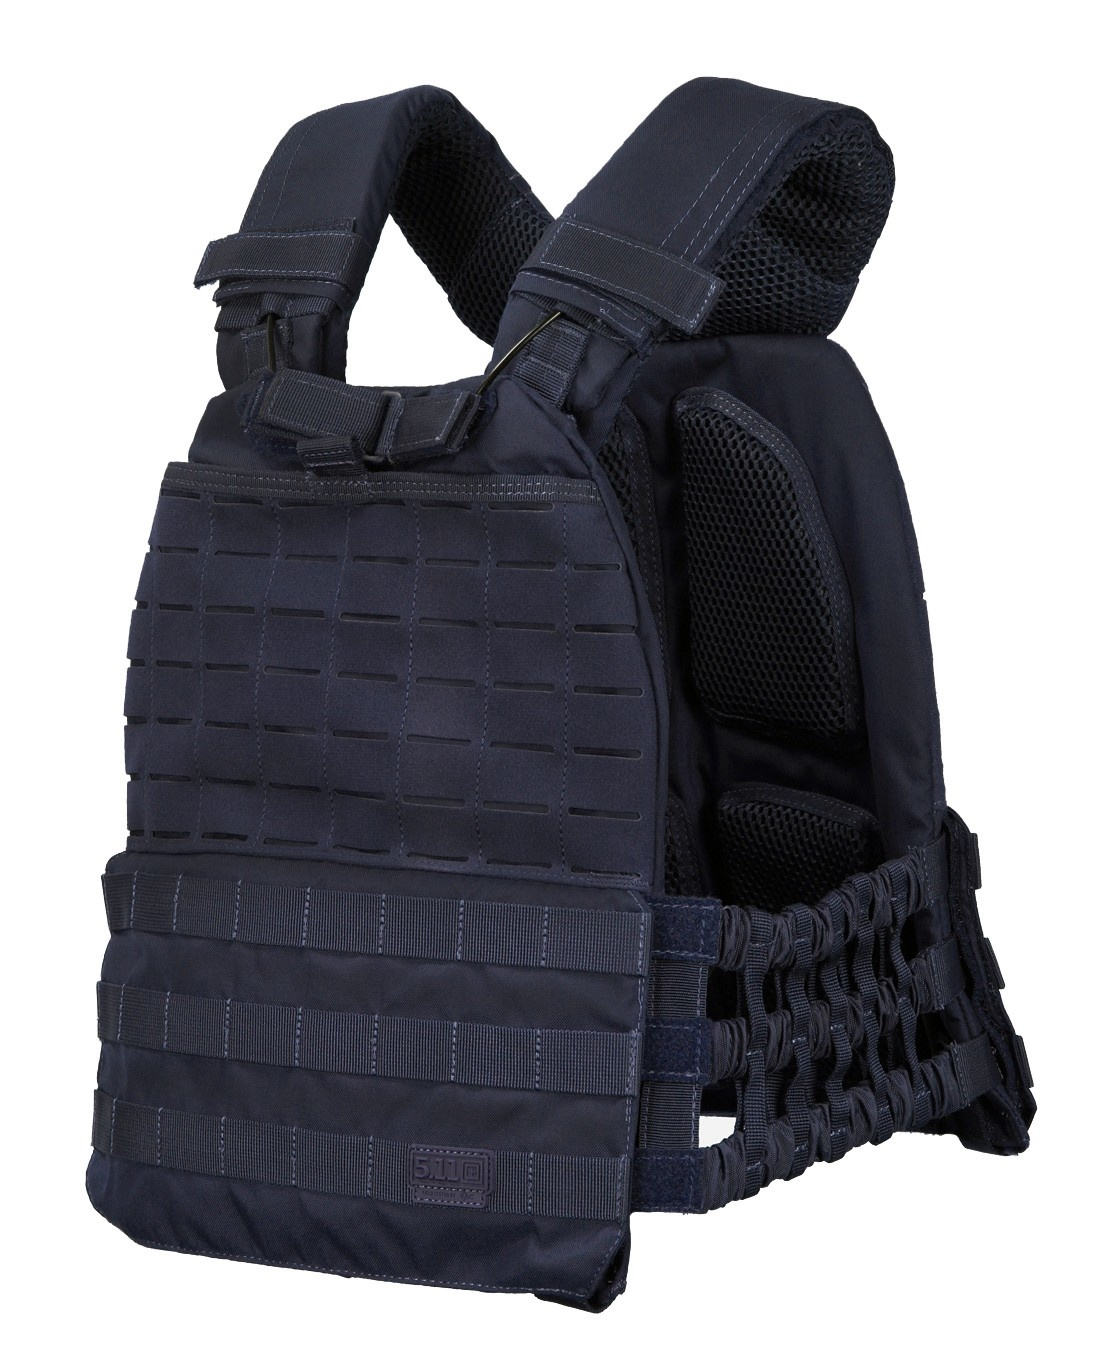 5.11 Tactical Plate Carrier